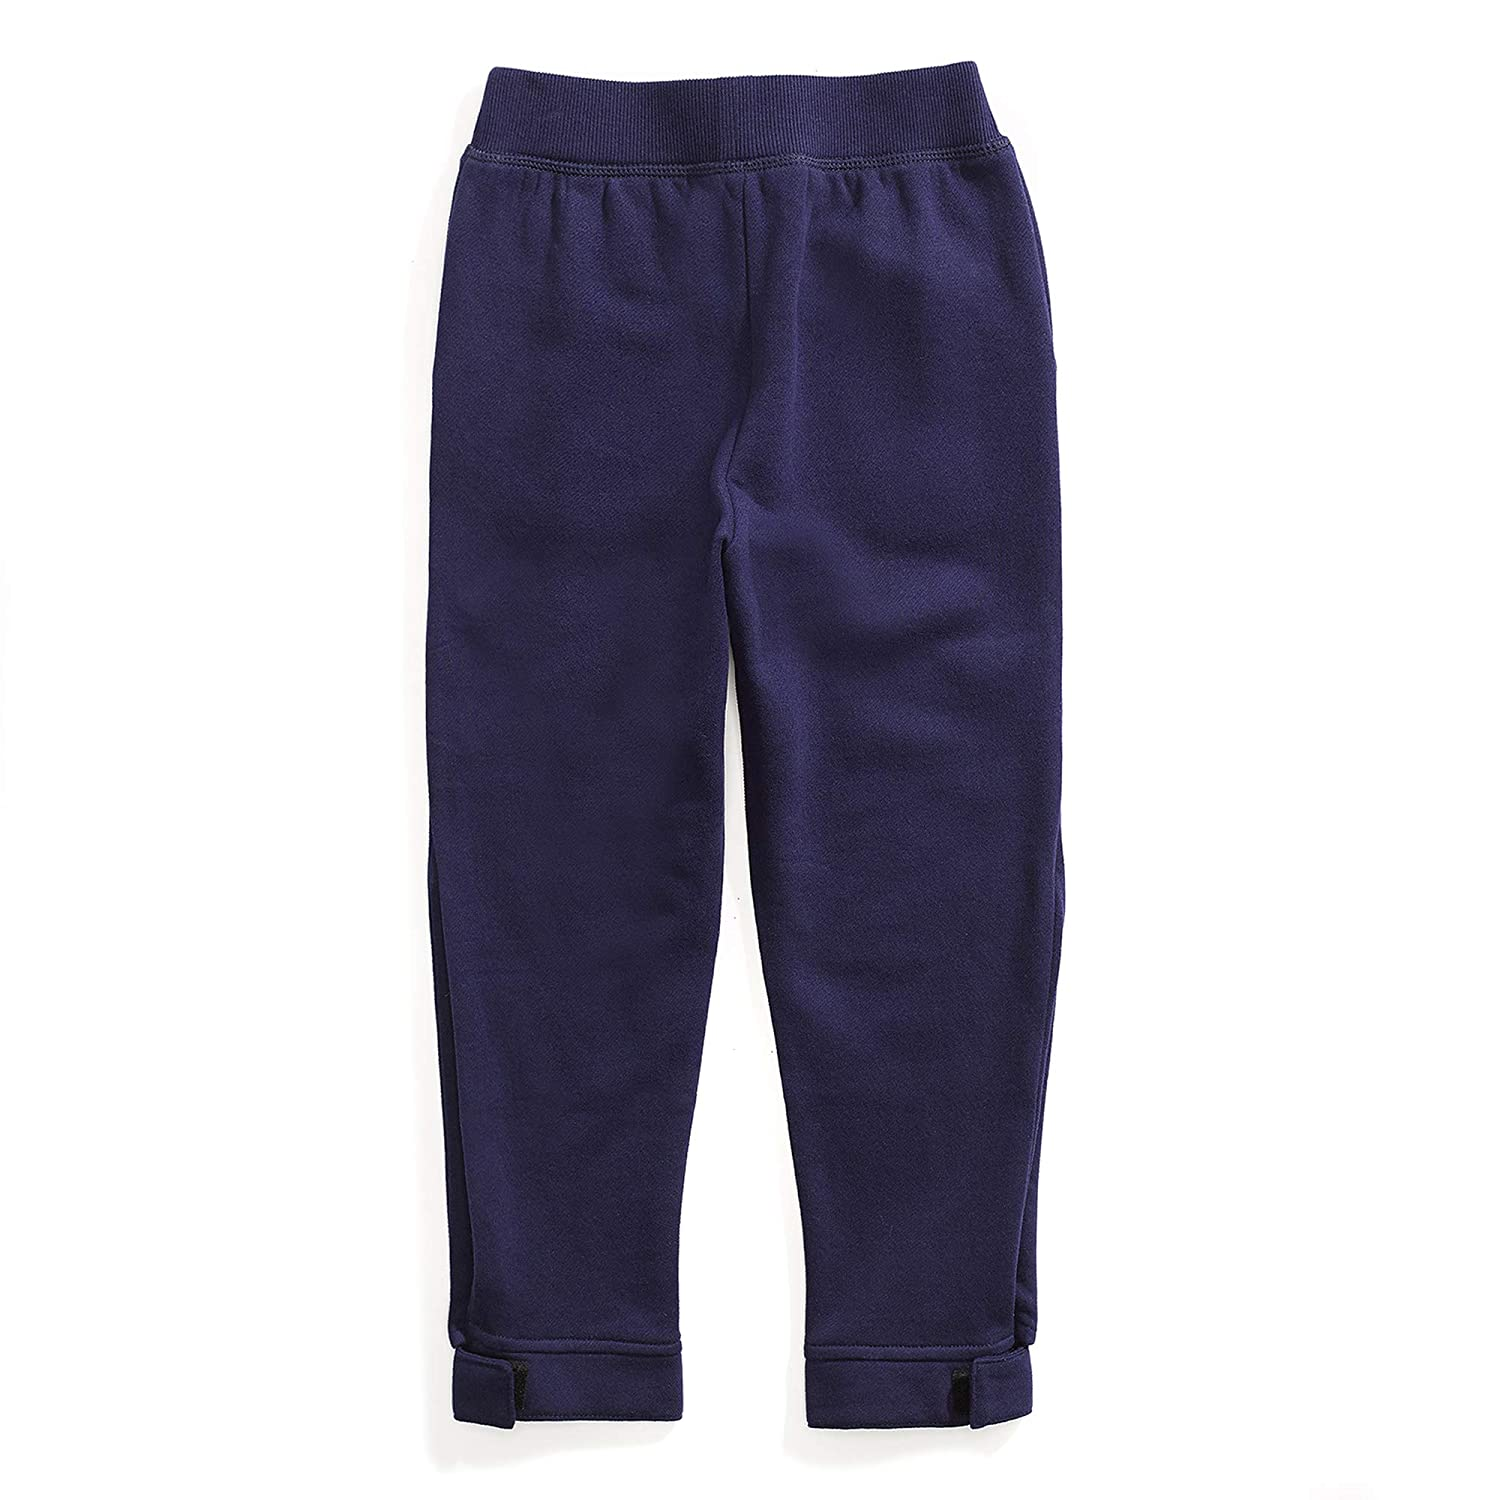 Tommy Hilfiger Girls Adaptive Jogger Pants with Adjustable Outside Seams